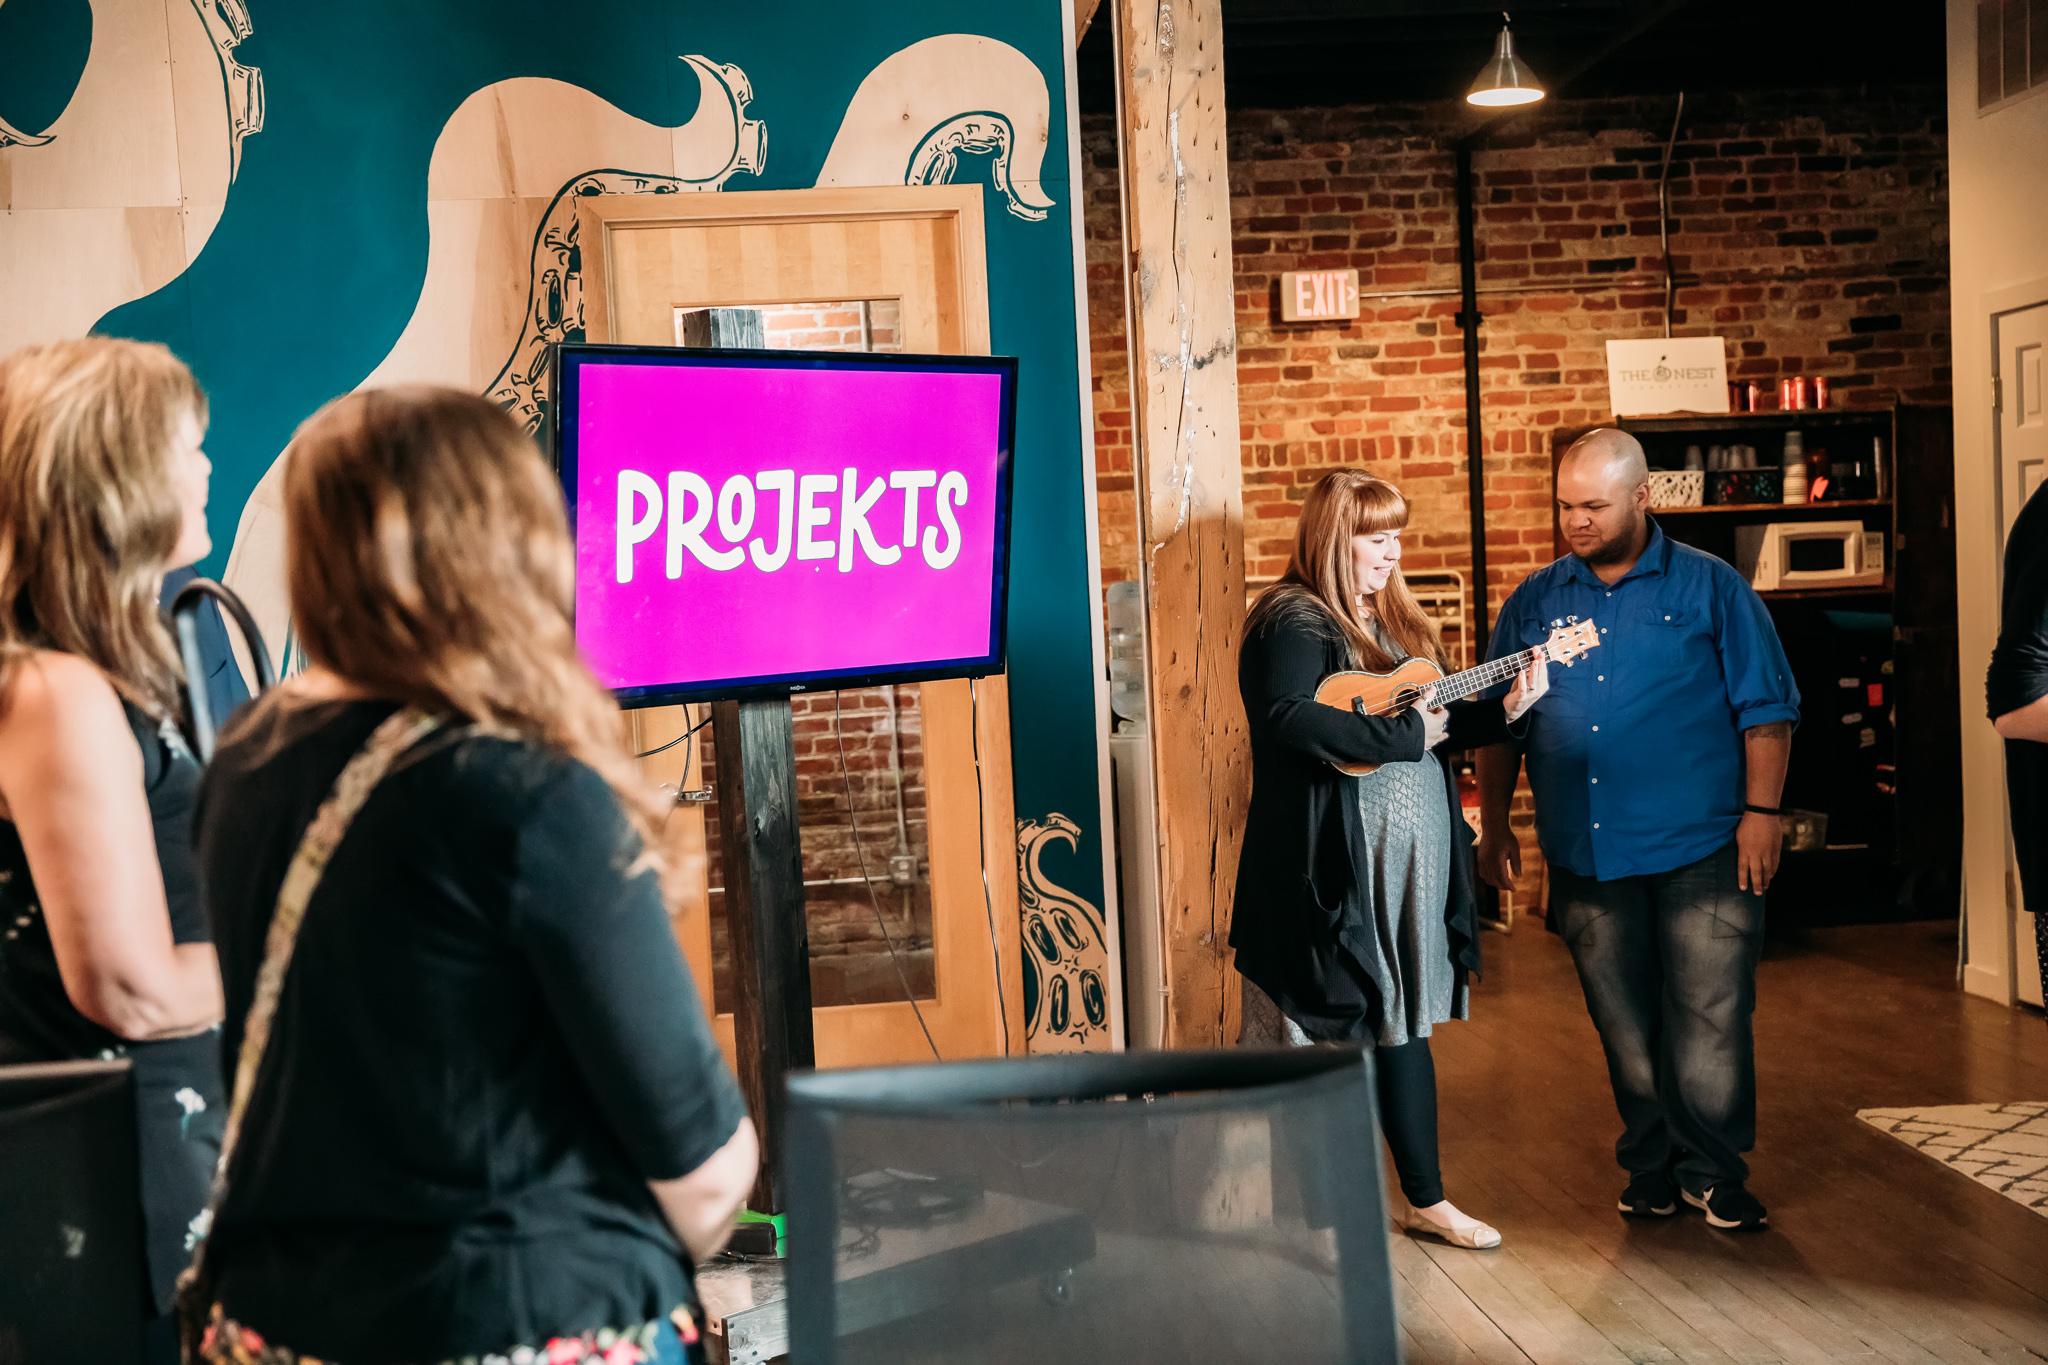 Projekts next to their new logo